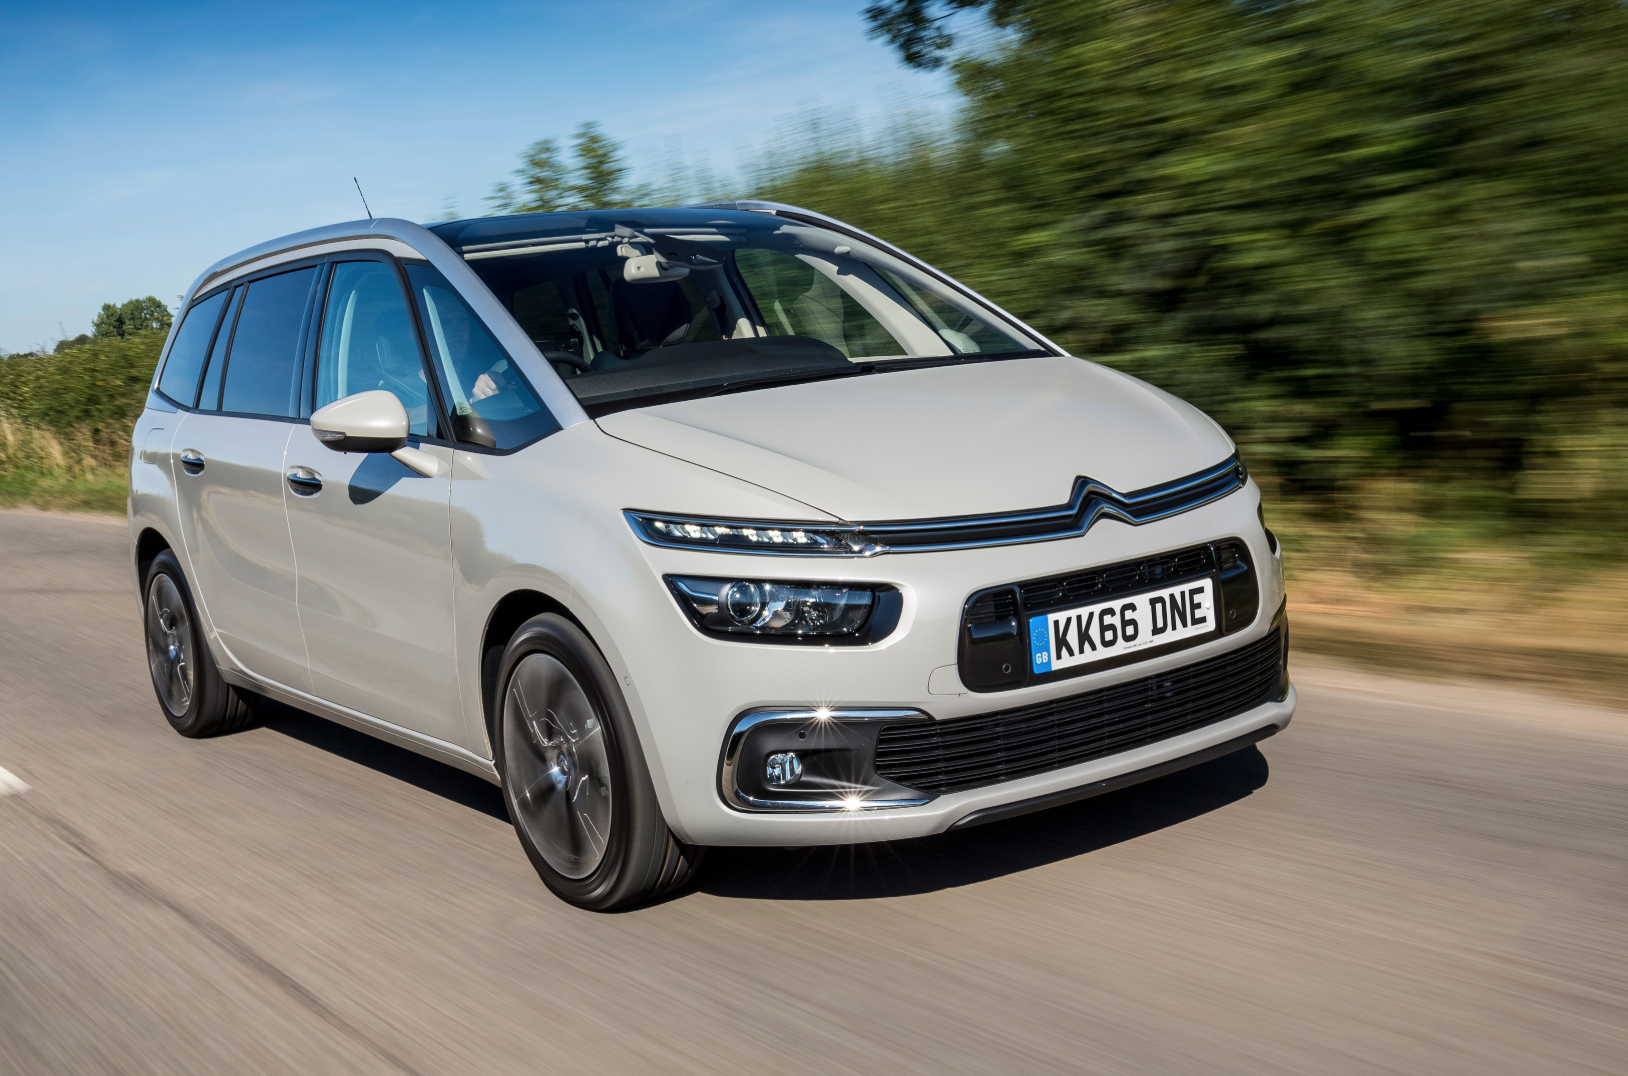 Citroen C4 Grand Picasso driving on the road